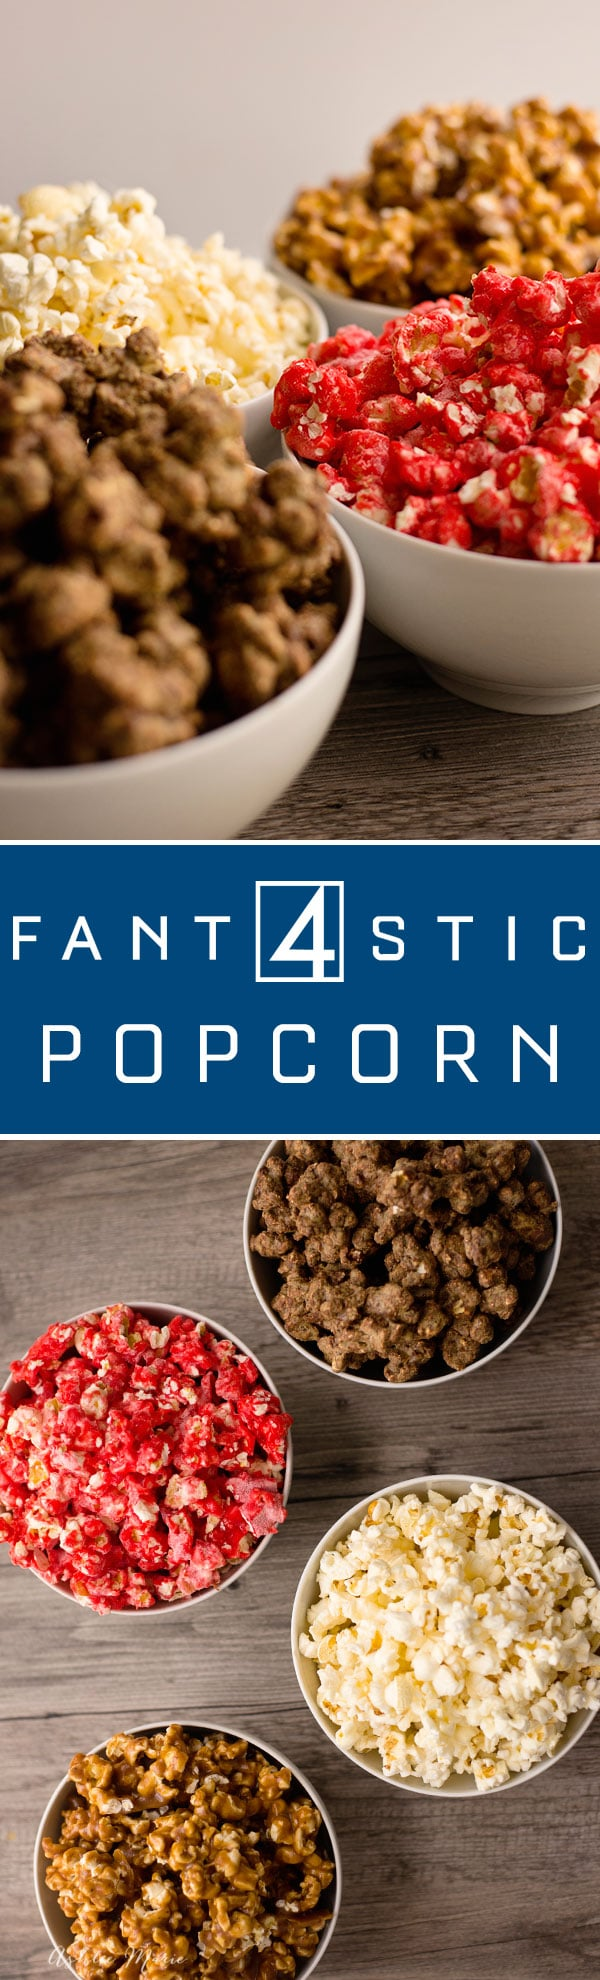 4 different types of popcorn to go along with the new fantastic 4 movie. Stretchy Caramel popcorn, simple and sweet Kettle Corn, Fiery Red Hot Candied Popcorn and Rocky Puppy Chow popcorn